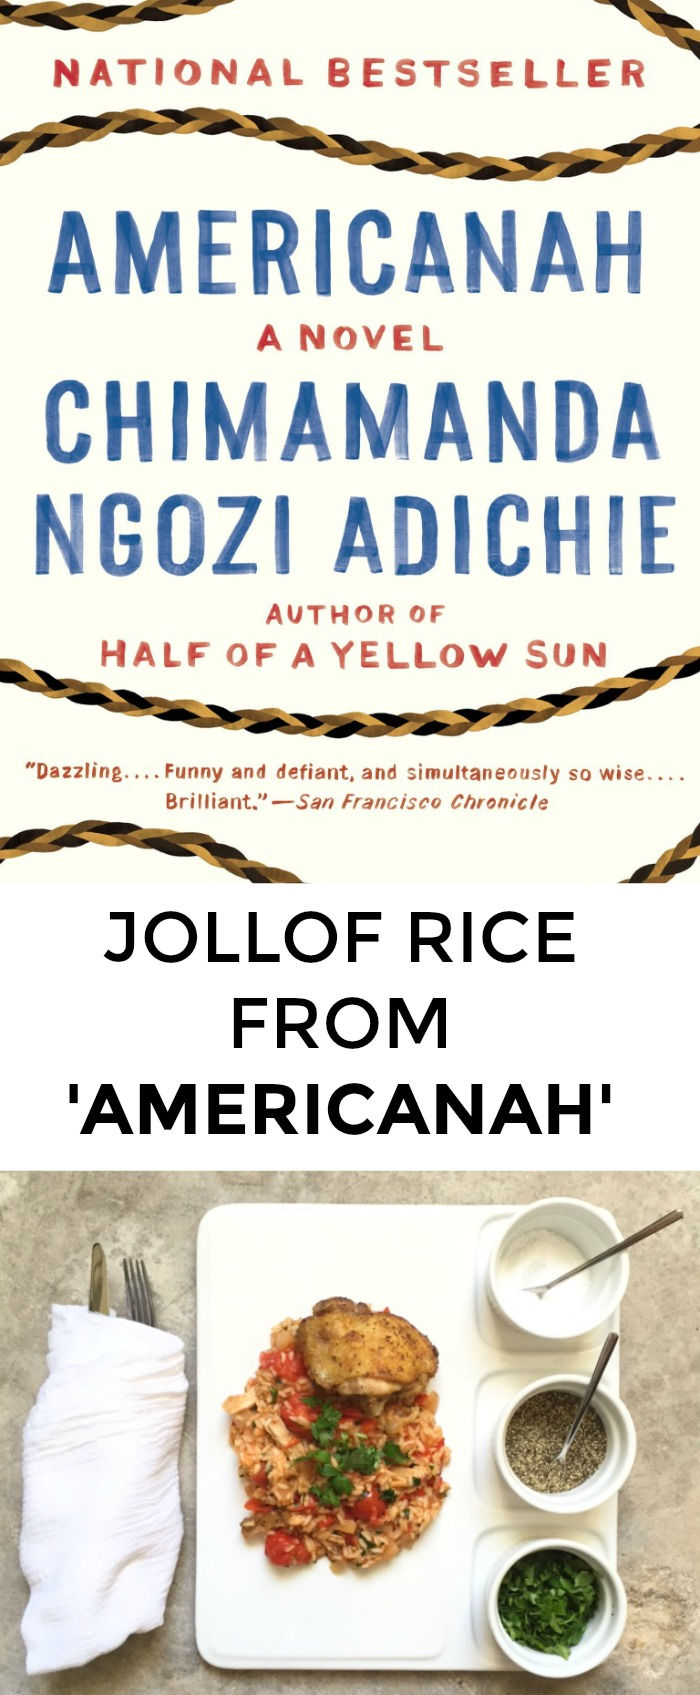 Looking for a recipe from Americanah? Want to impress the Chimamanda Ngozi Adichie fans in your life? Click through for a great Nigerian recipe for Jollof rice!